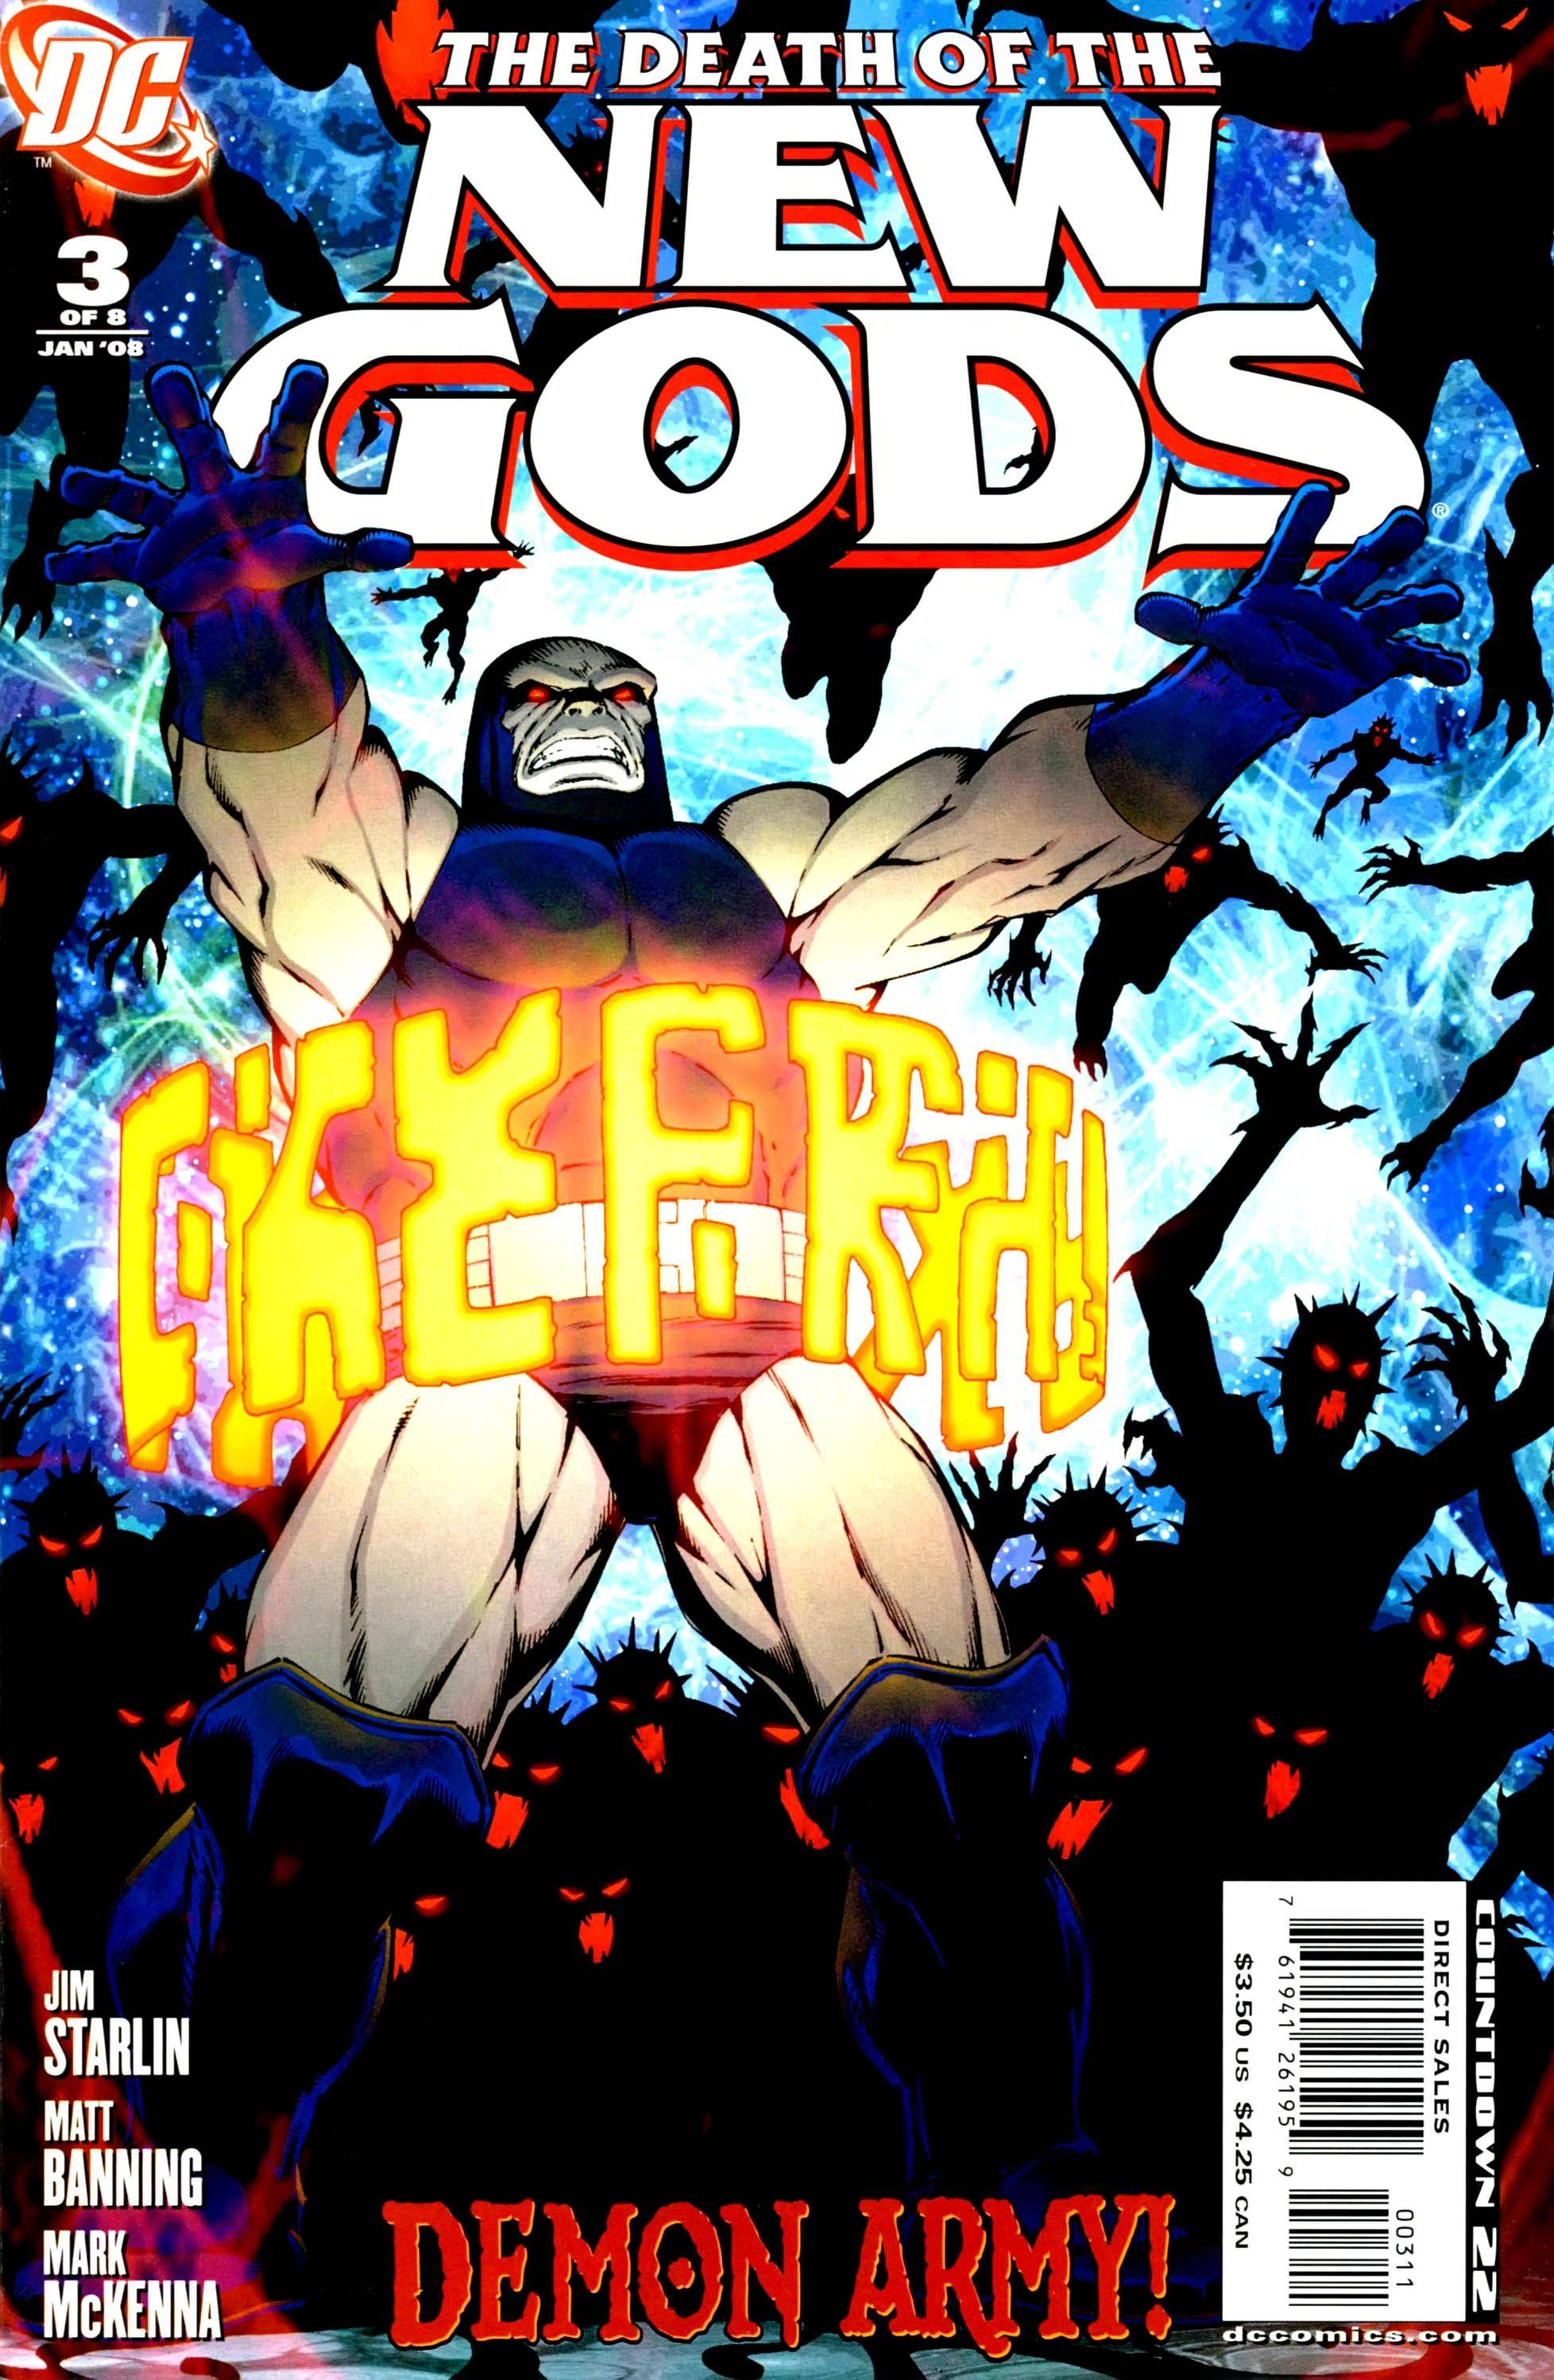 Death Of The New Gods 03 of 08 (2008)